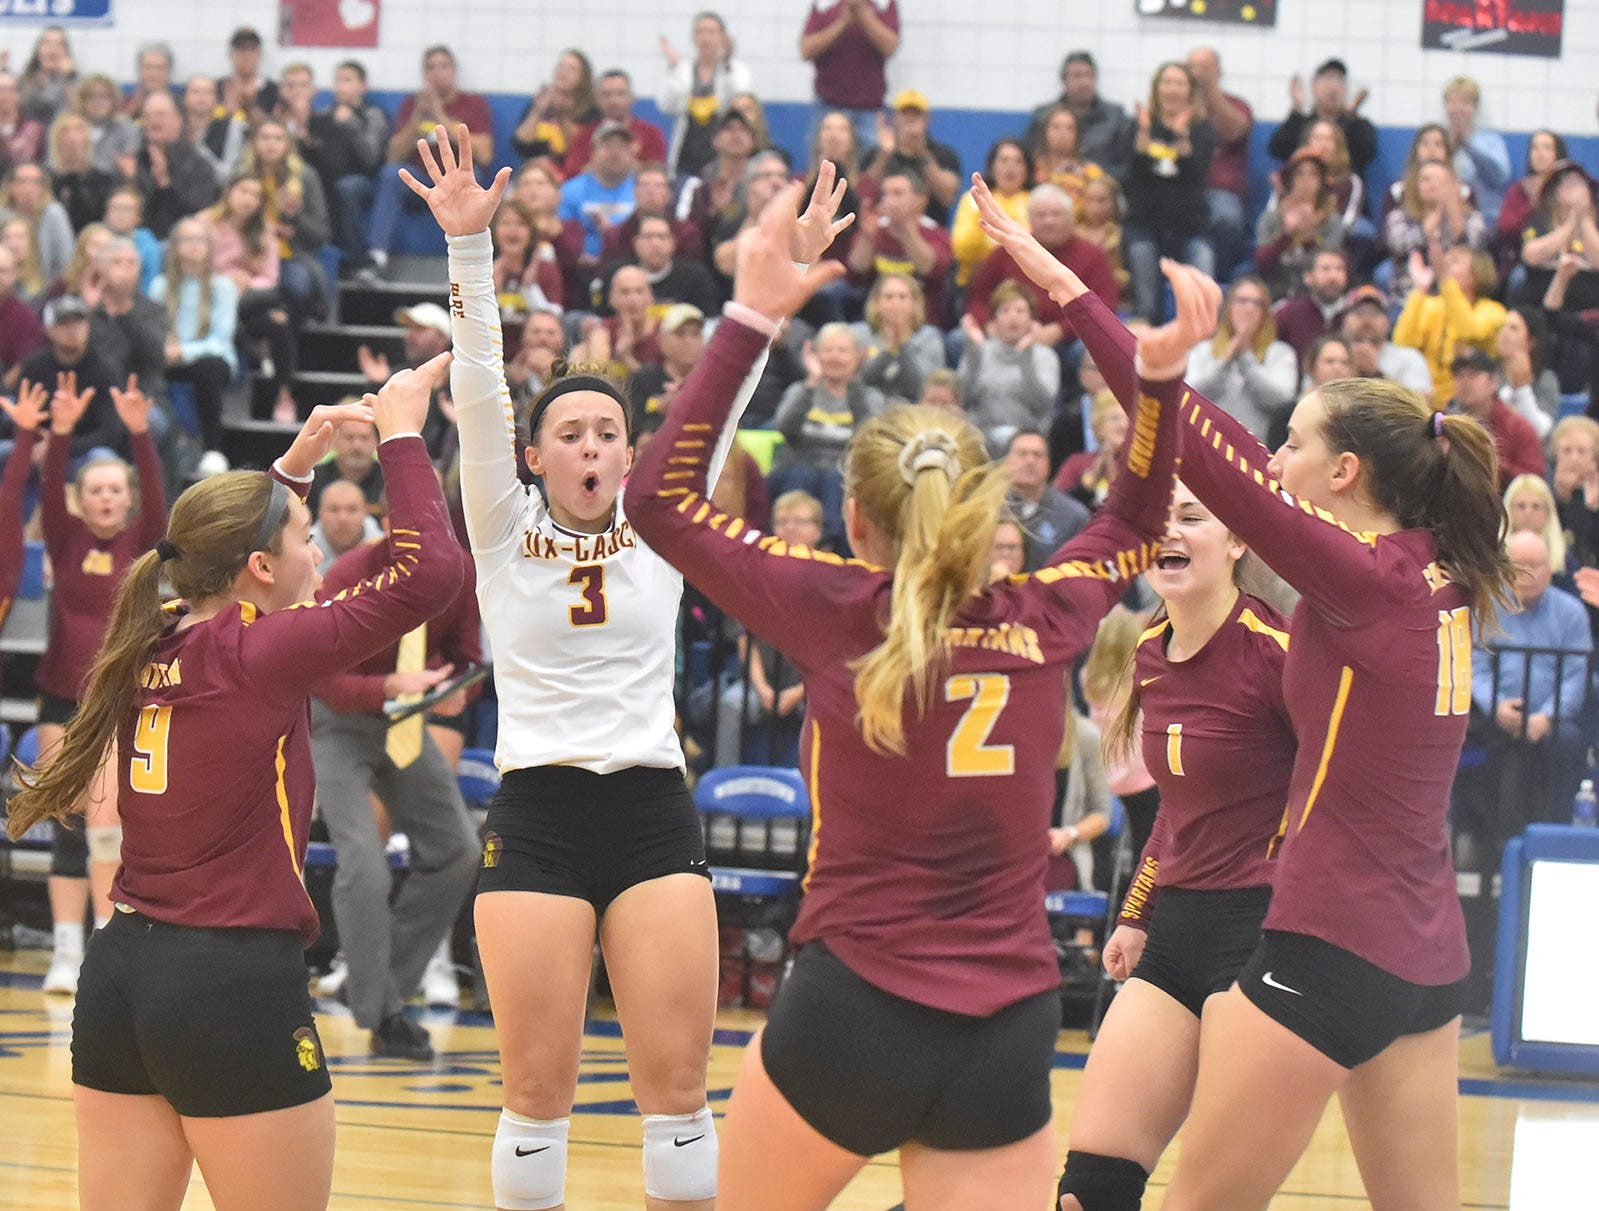 Luxemburg-Casco celebrates a point against Little Chute at the WIAA Division 2 sectional final against Little Chute on Oct. 27, 2018, in Wrightstown. Tina M. Gohr/USA TODAY NETWORK-Wisconsin